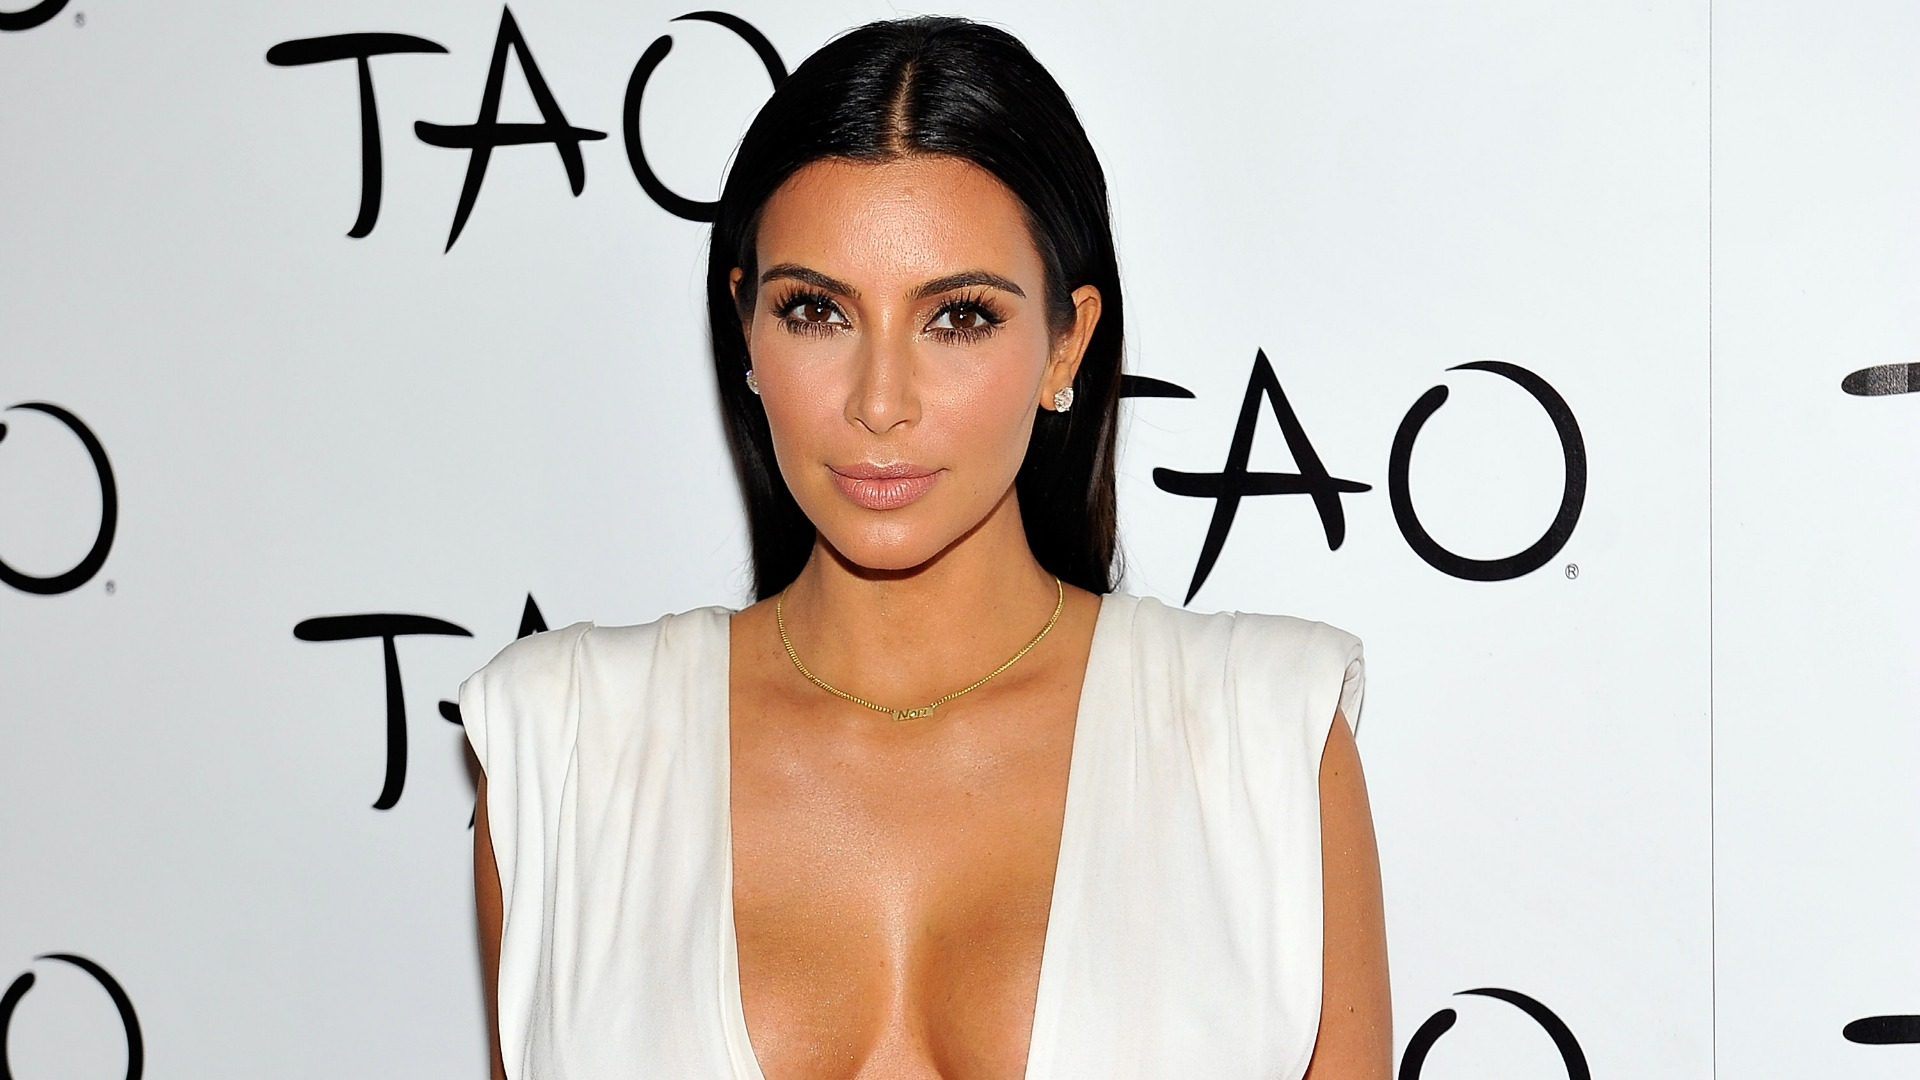 Kim Kardashian's latest television cameo appearance is in 2 Broke Girls